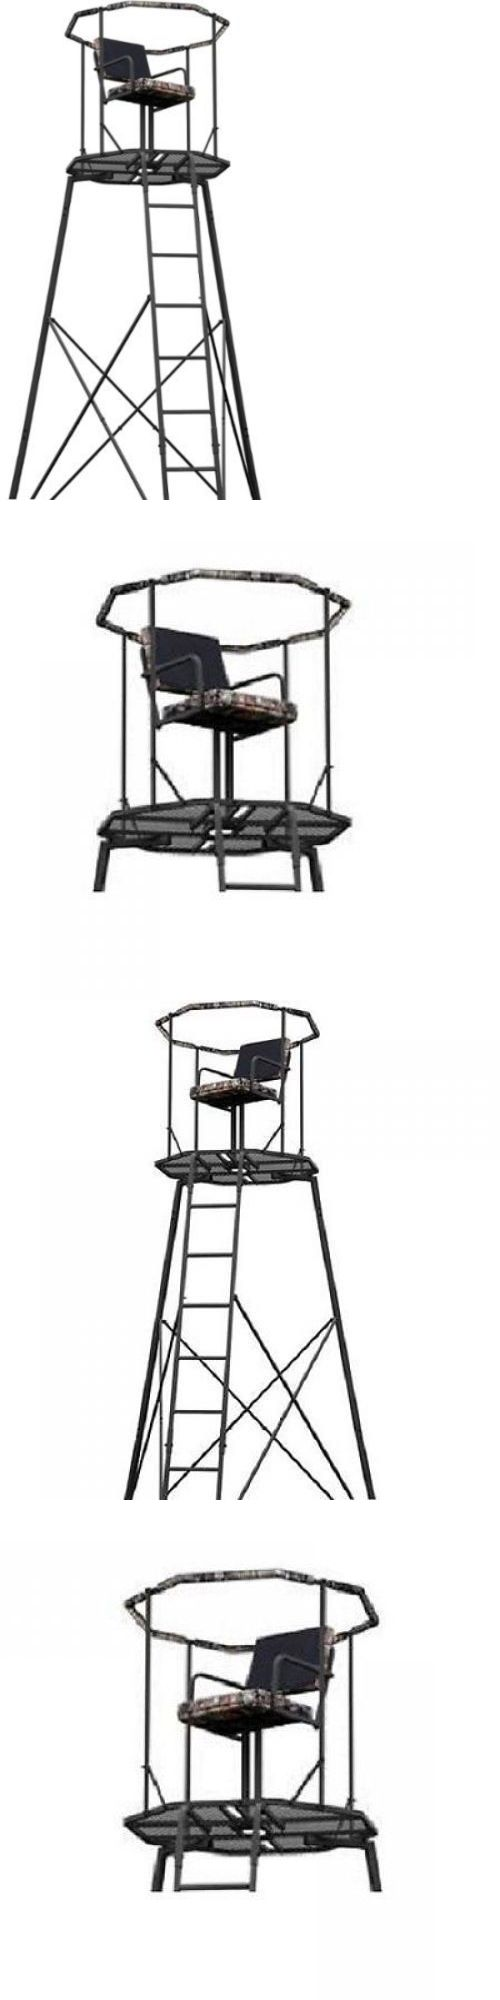 Tree Stands 52508: 15 Tripod Hunting Stand With Seat Tree Deer Ladder Bow Treestand Realtree New -> BUY IT NOW ONLY: $277.2 on eBay!